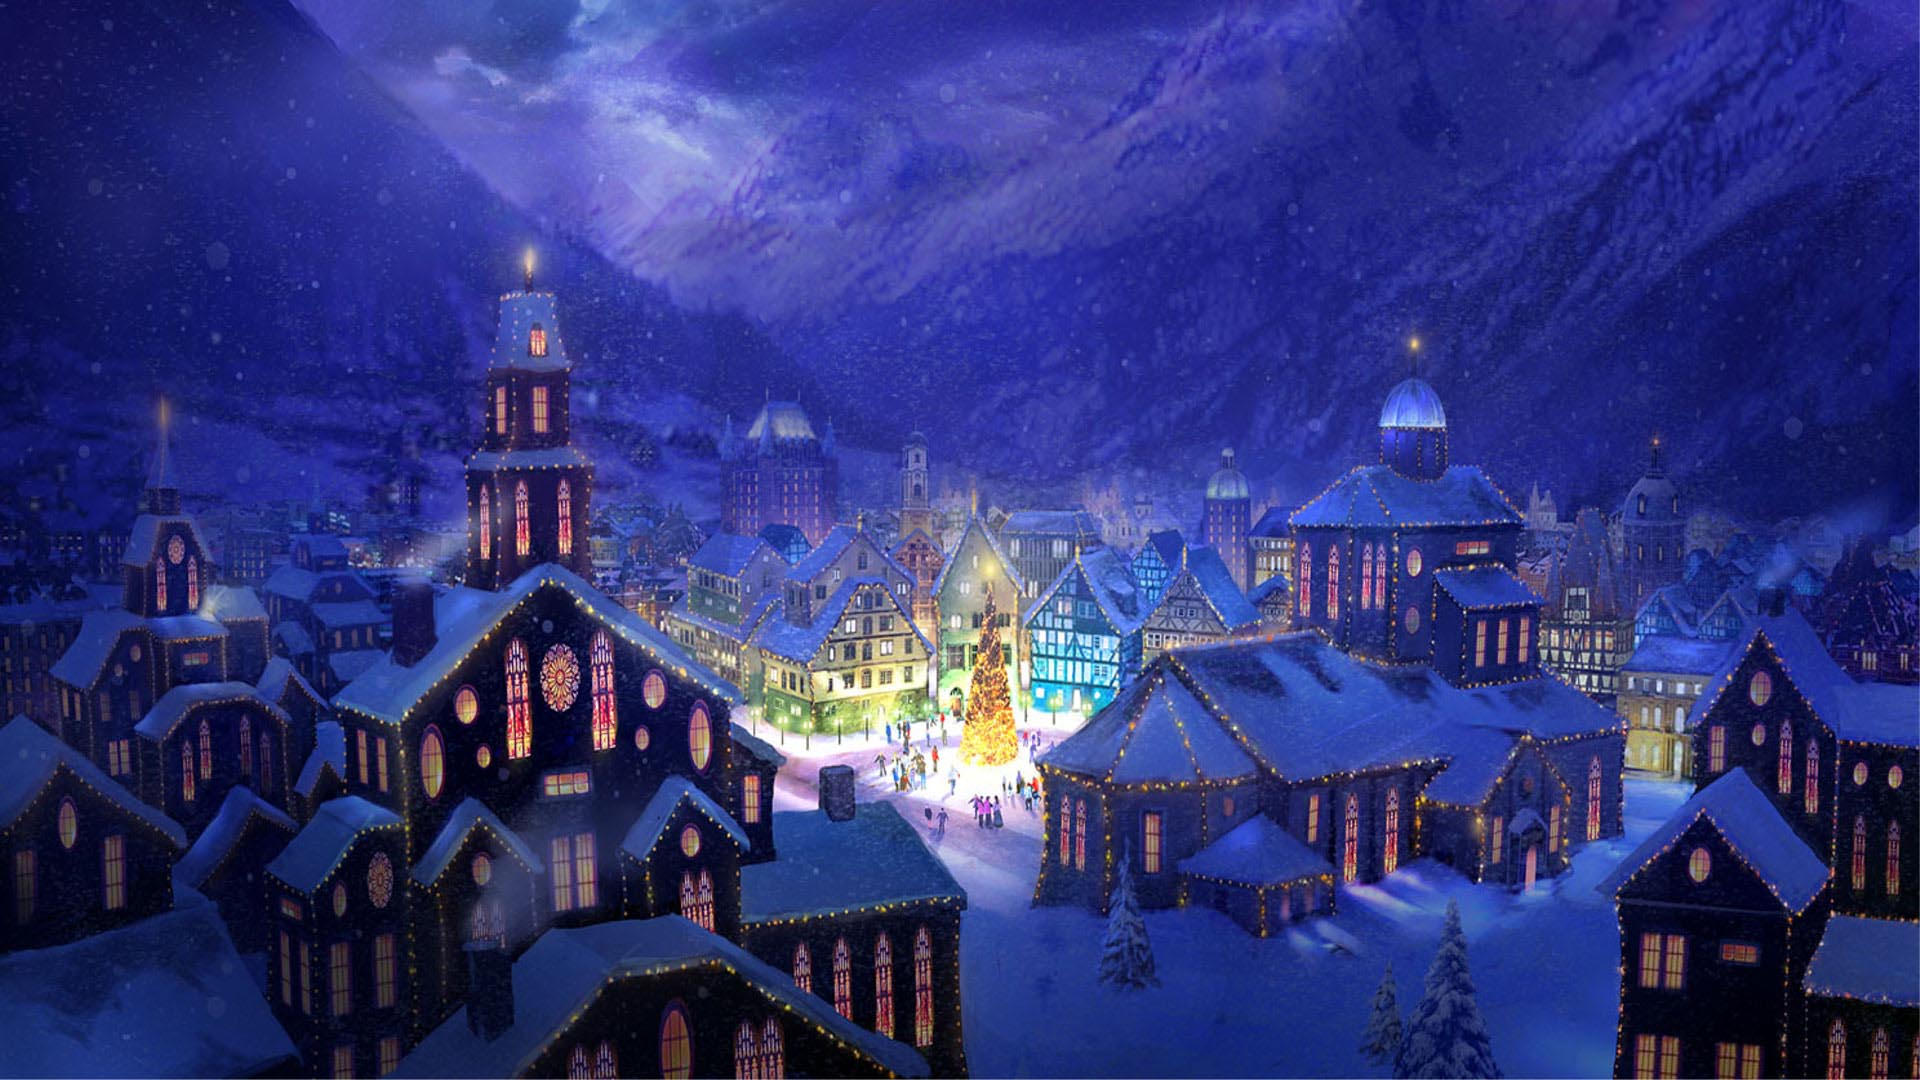 Pics Photos   Wallpaper Christmas Village Scene 2013 Hd 1920x1080